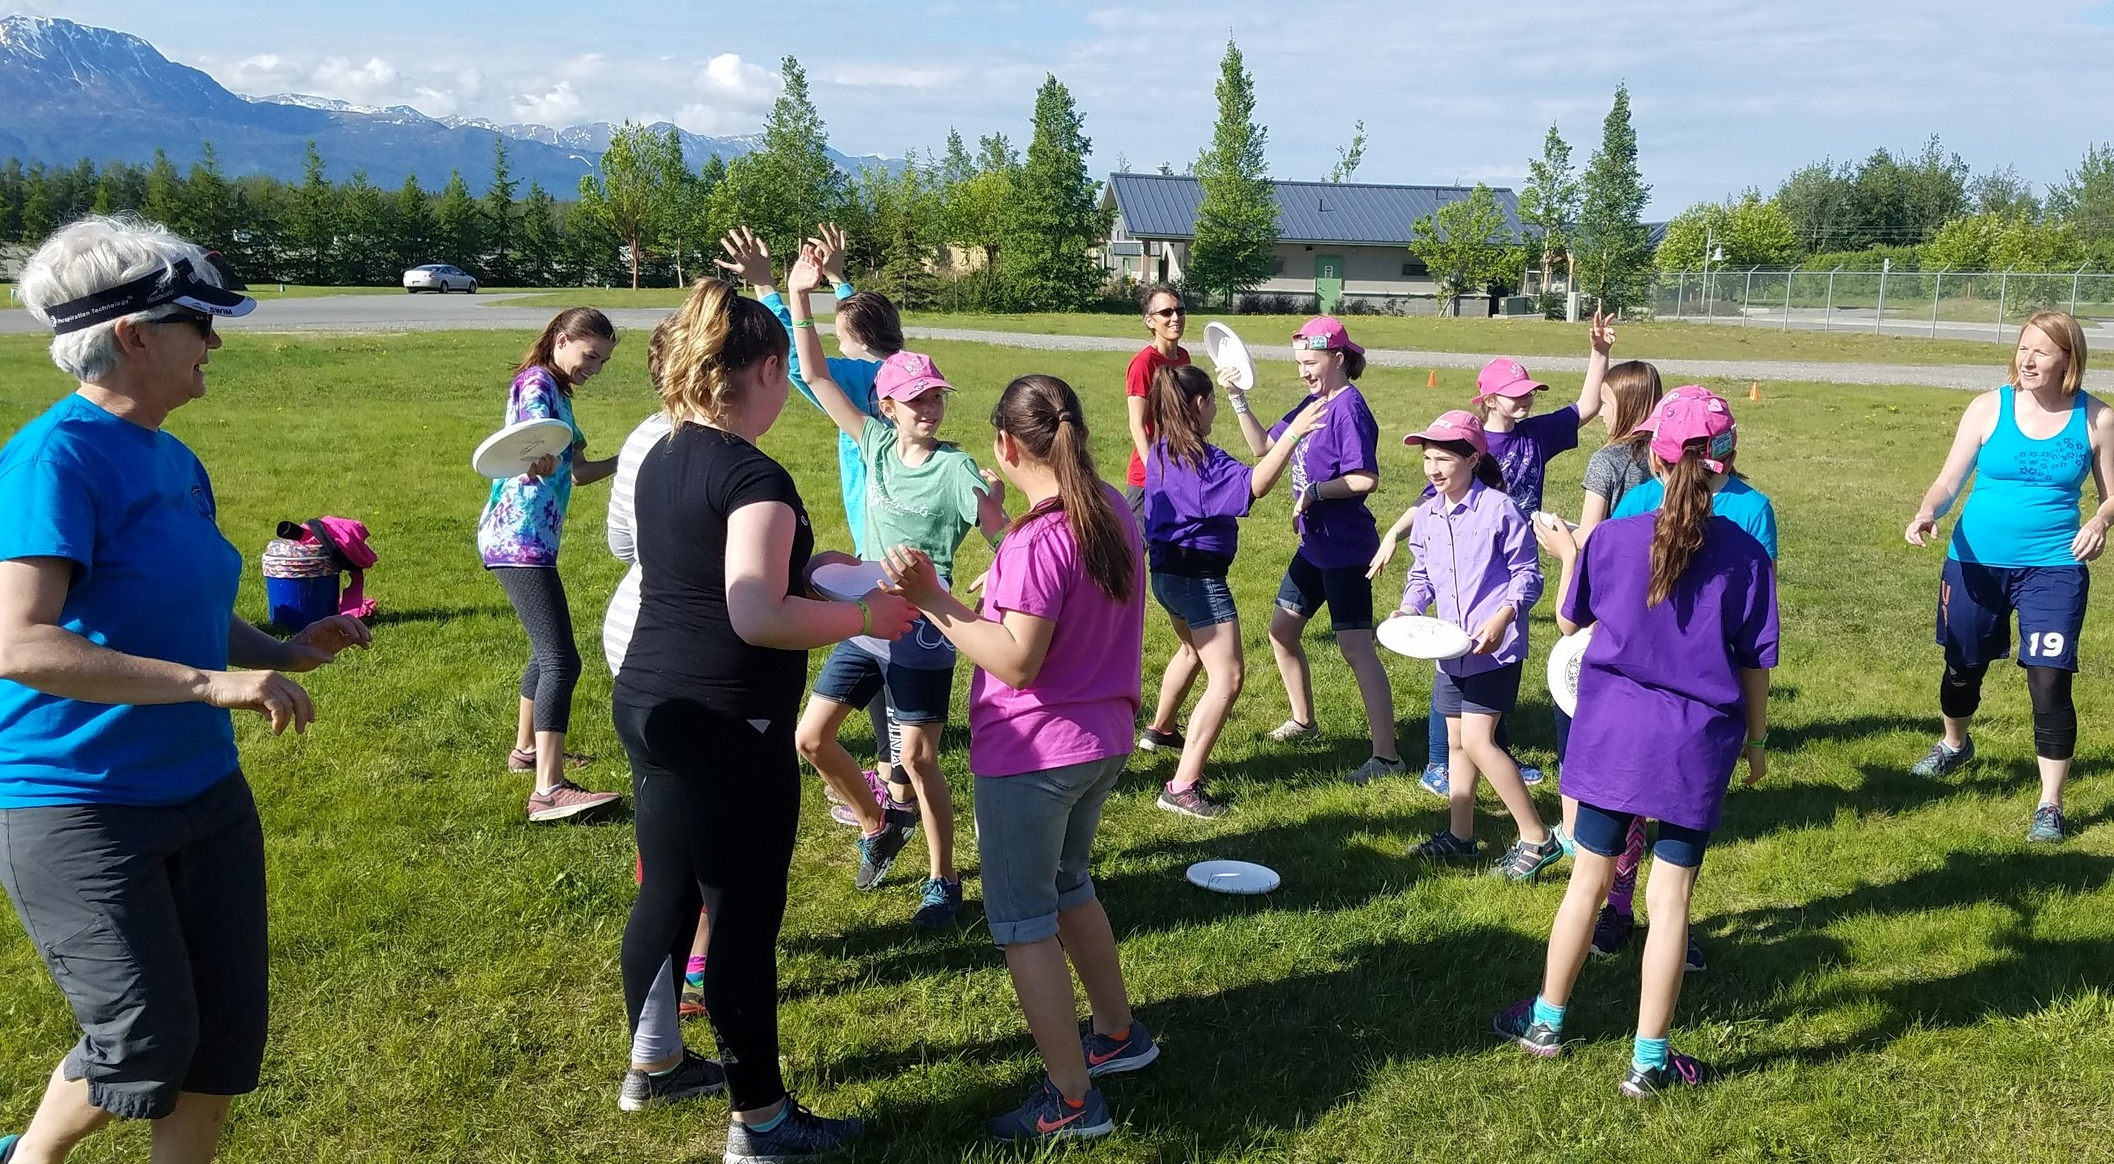 Girls scouts playing a spirit game called mingle to warm up and get to know each other at the start of the clinic.